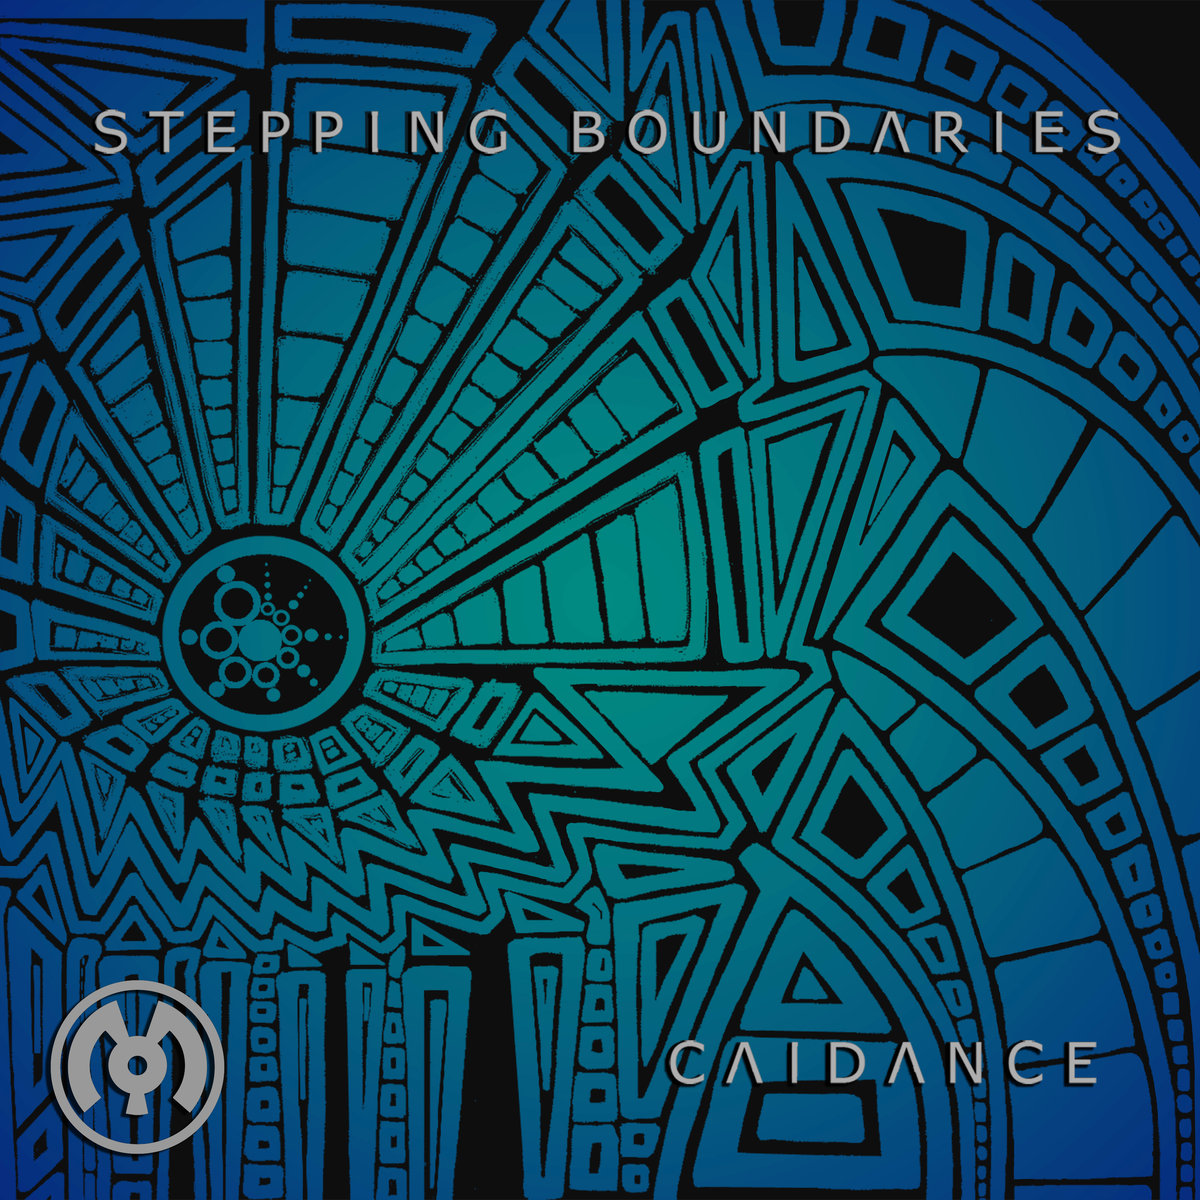 Caidance - Black Coffee @ 'Stepping Boundaries' album (electronic, dubstep)